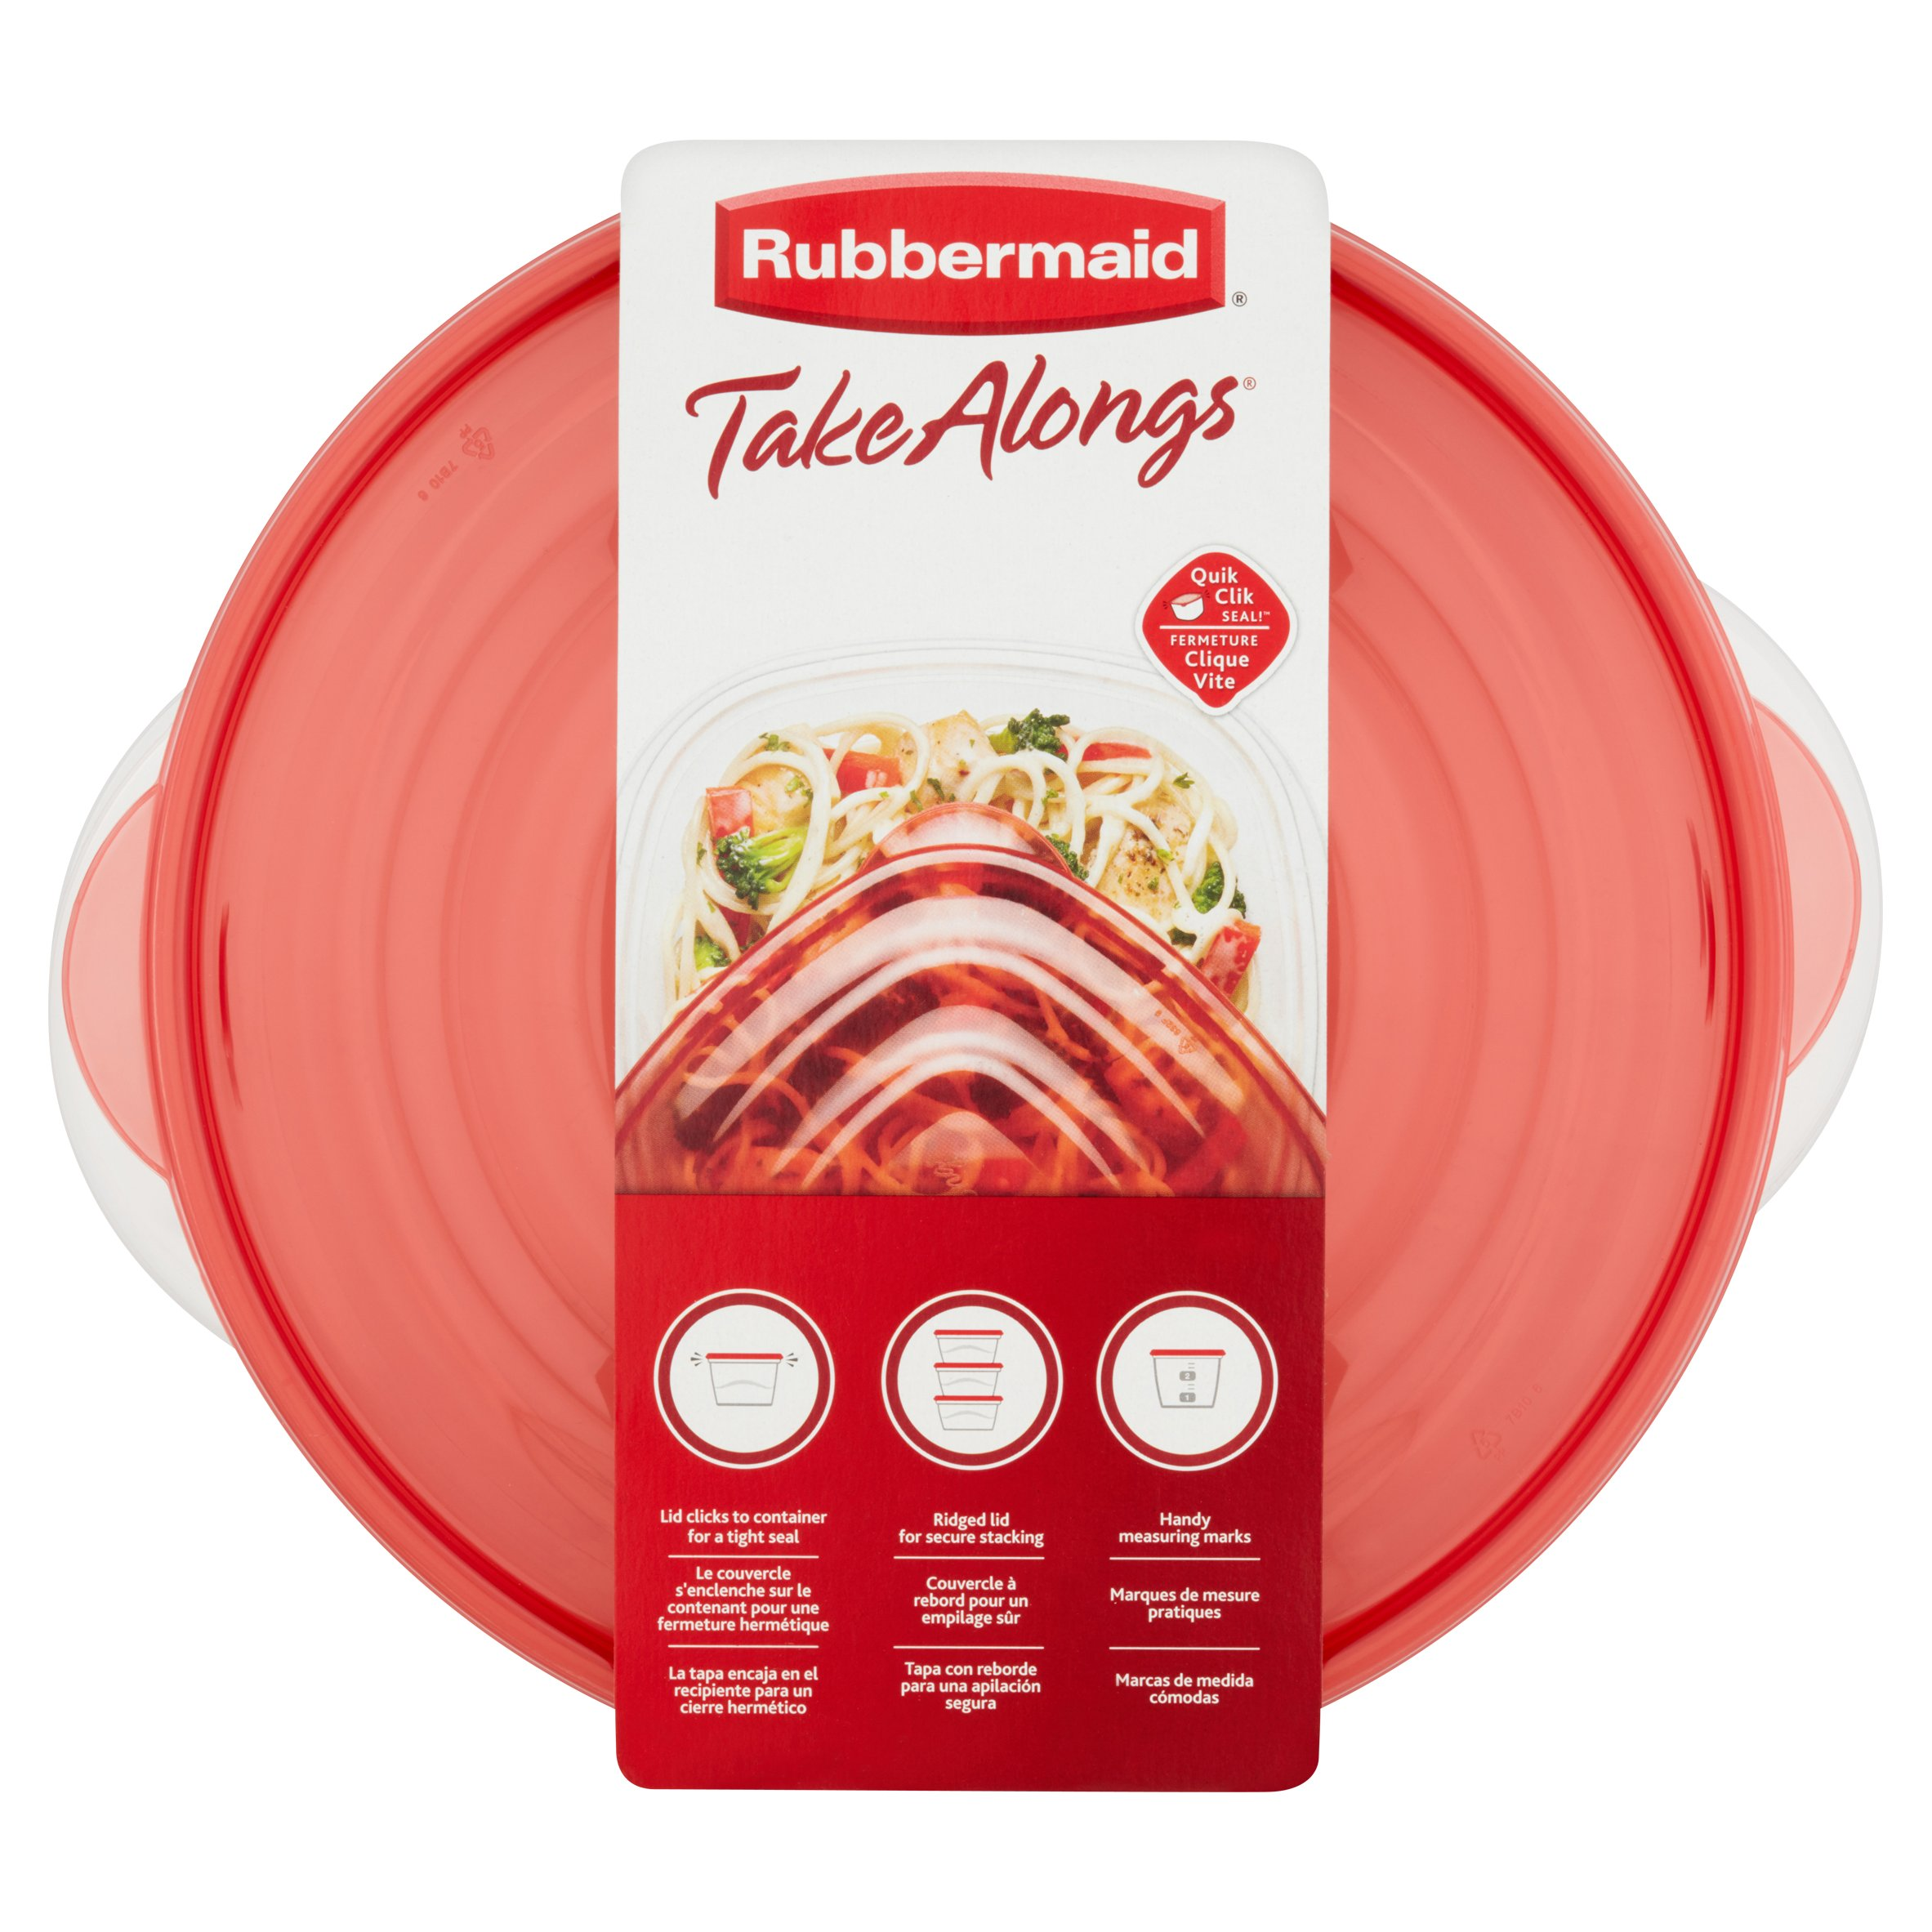 Rubbermaid TakeAlongs 15.7 Cups Serving Bowls, 2 count